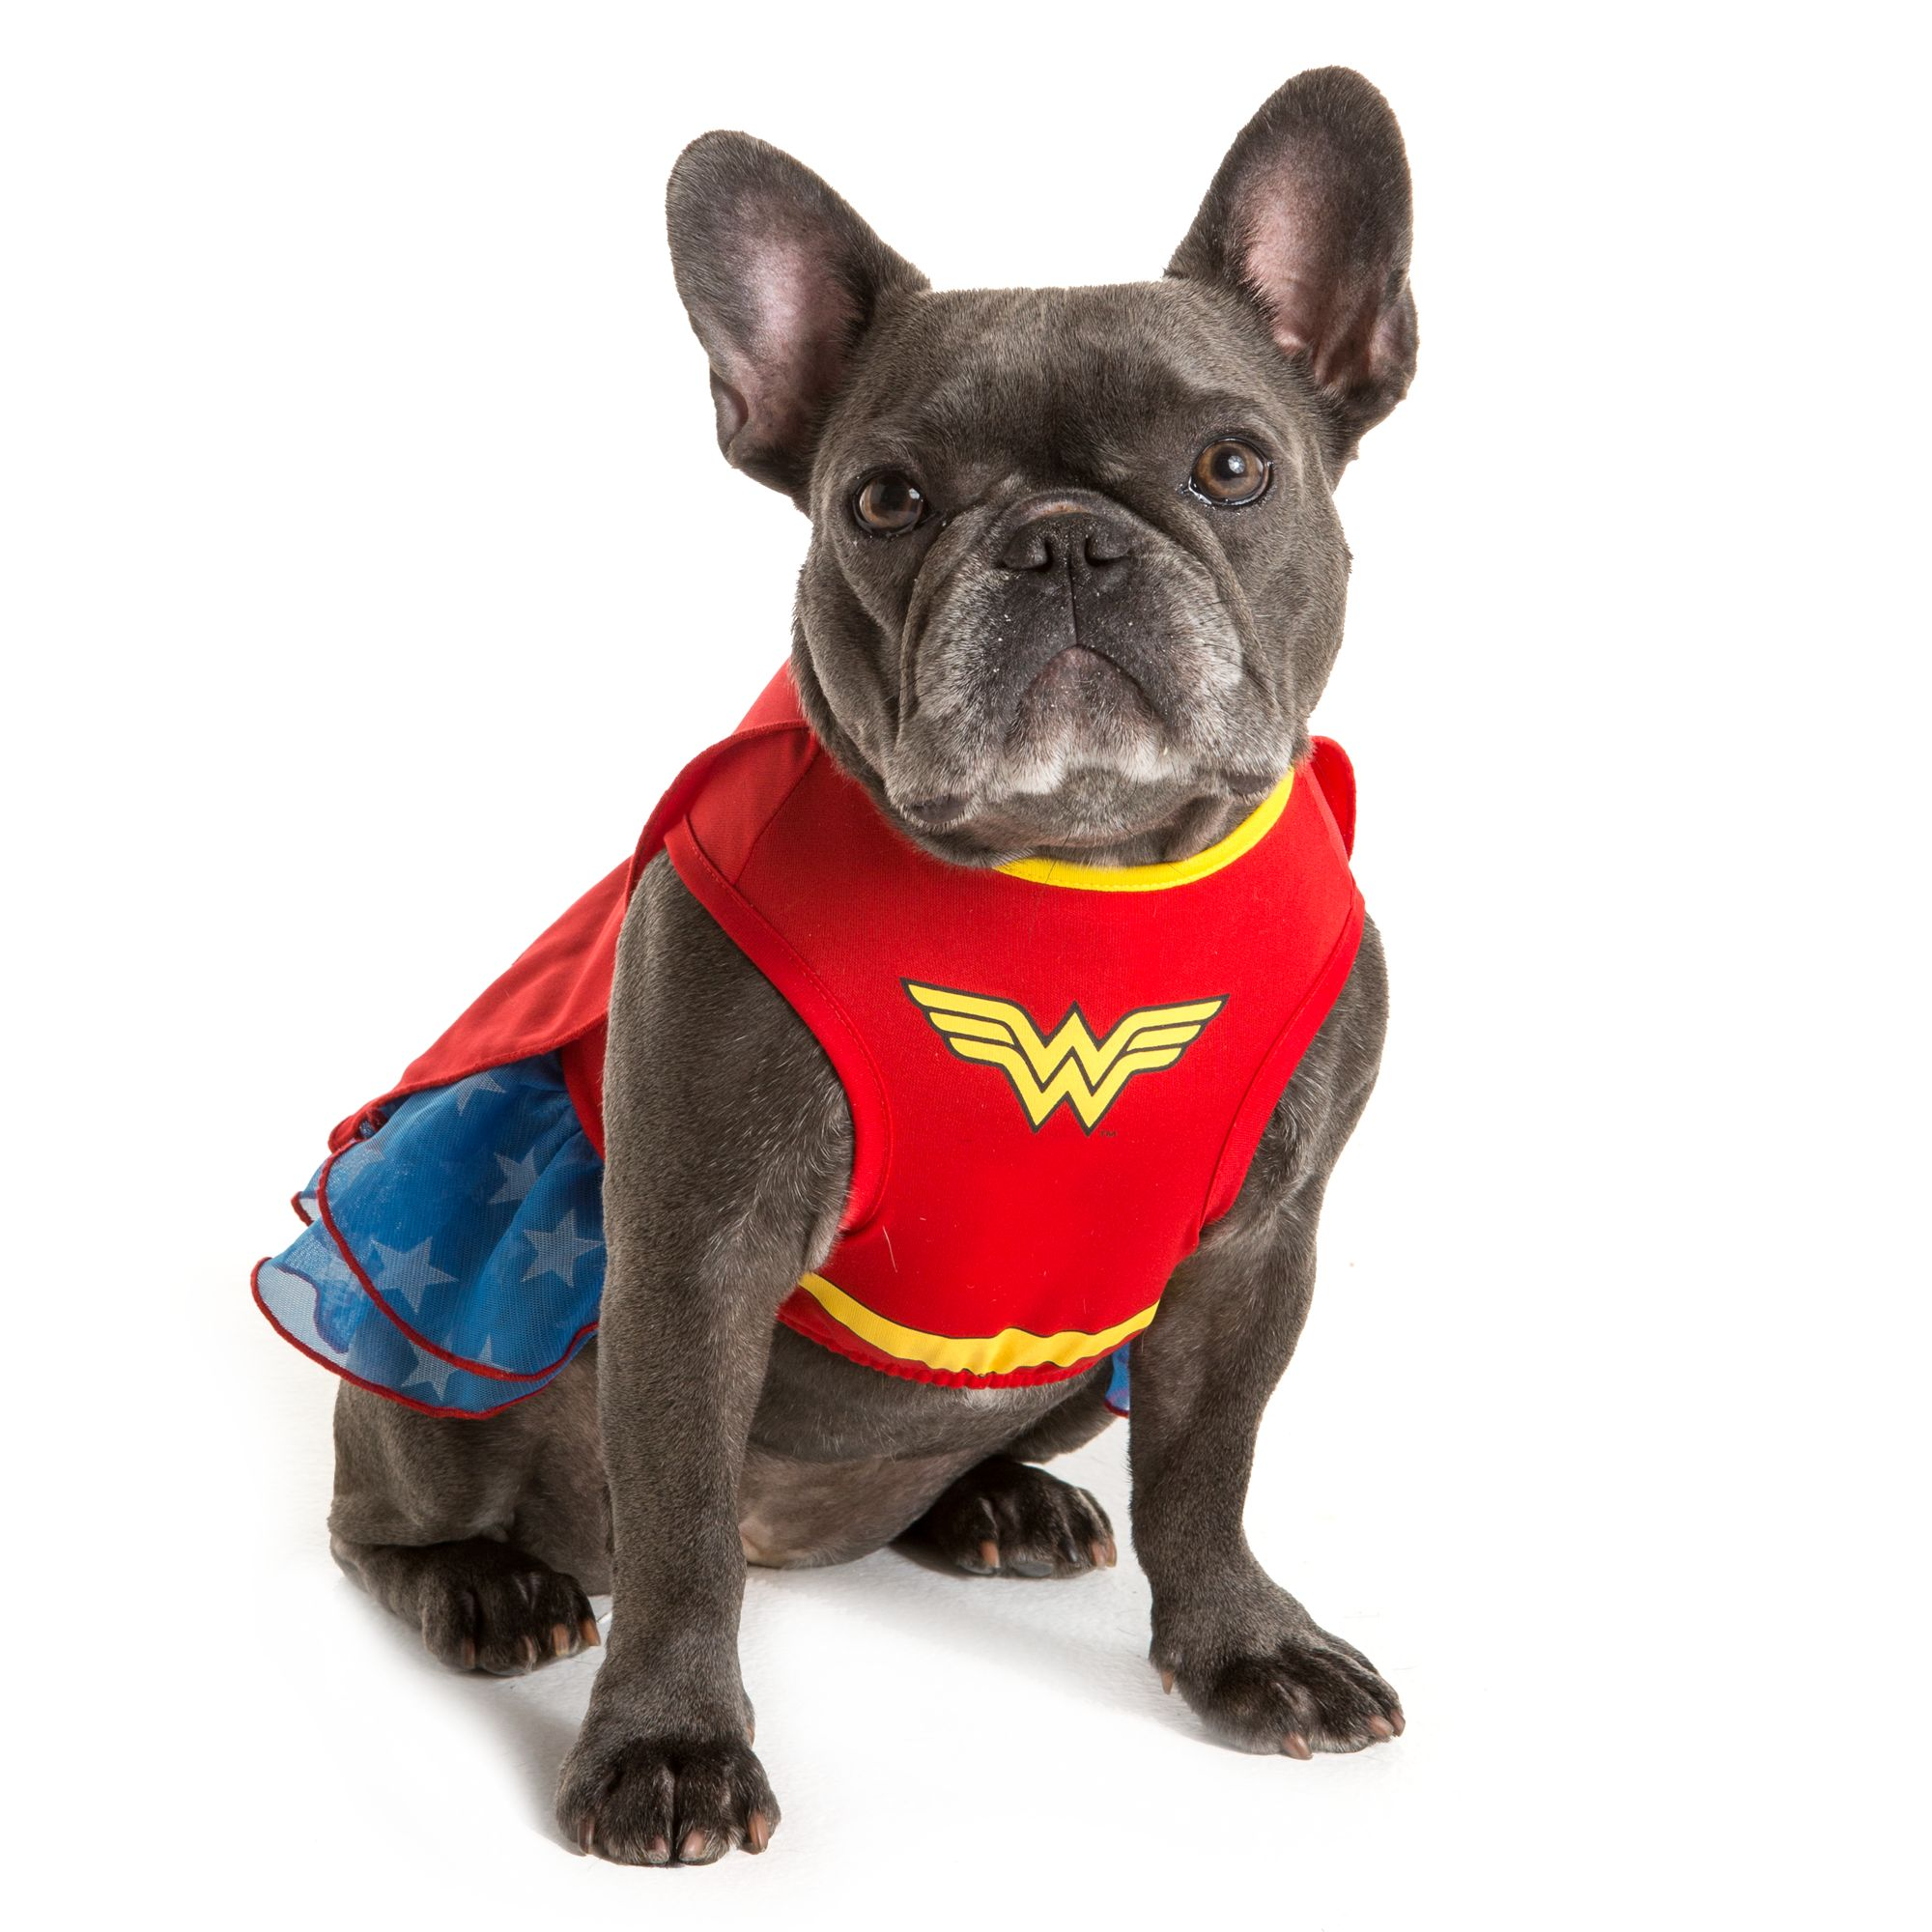 Wonder Woman Pet Costume for Halloween  #pets #halloween #dogcostume